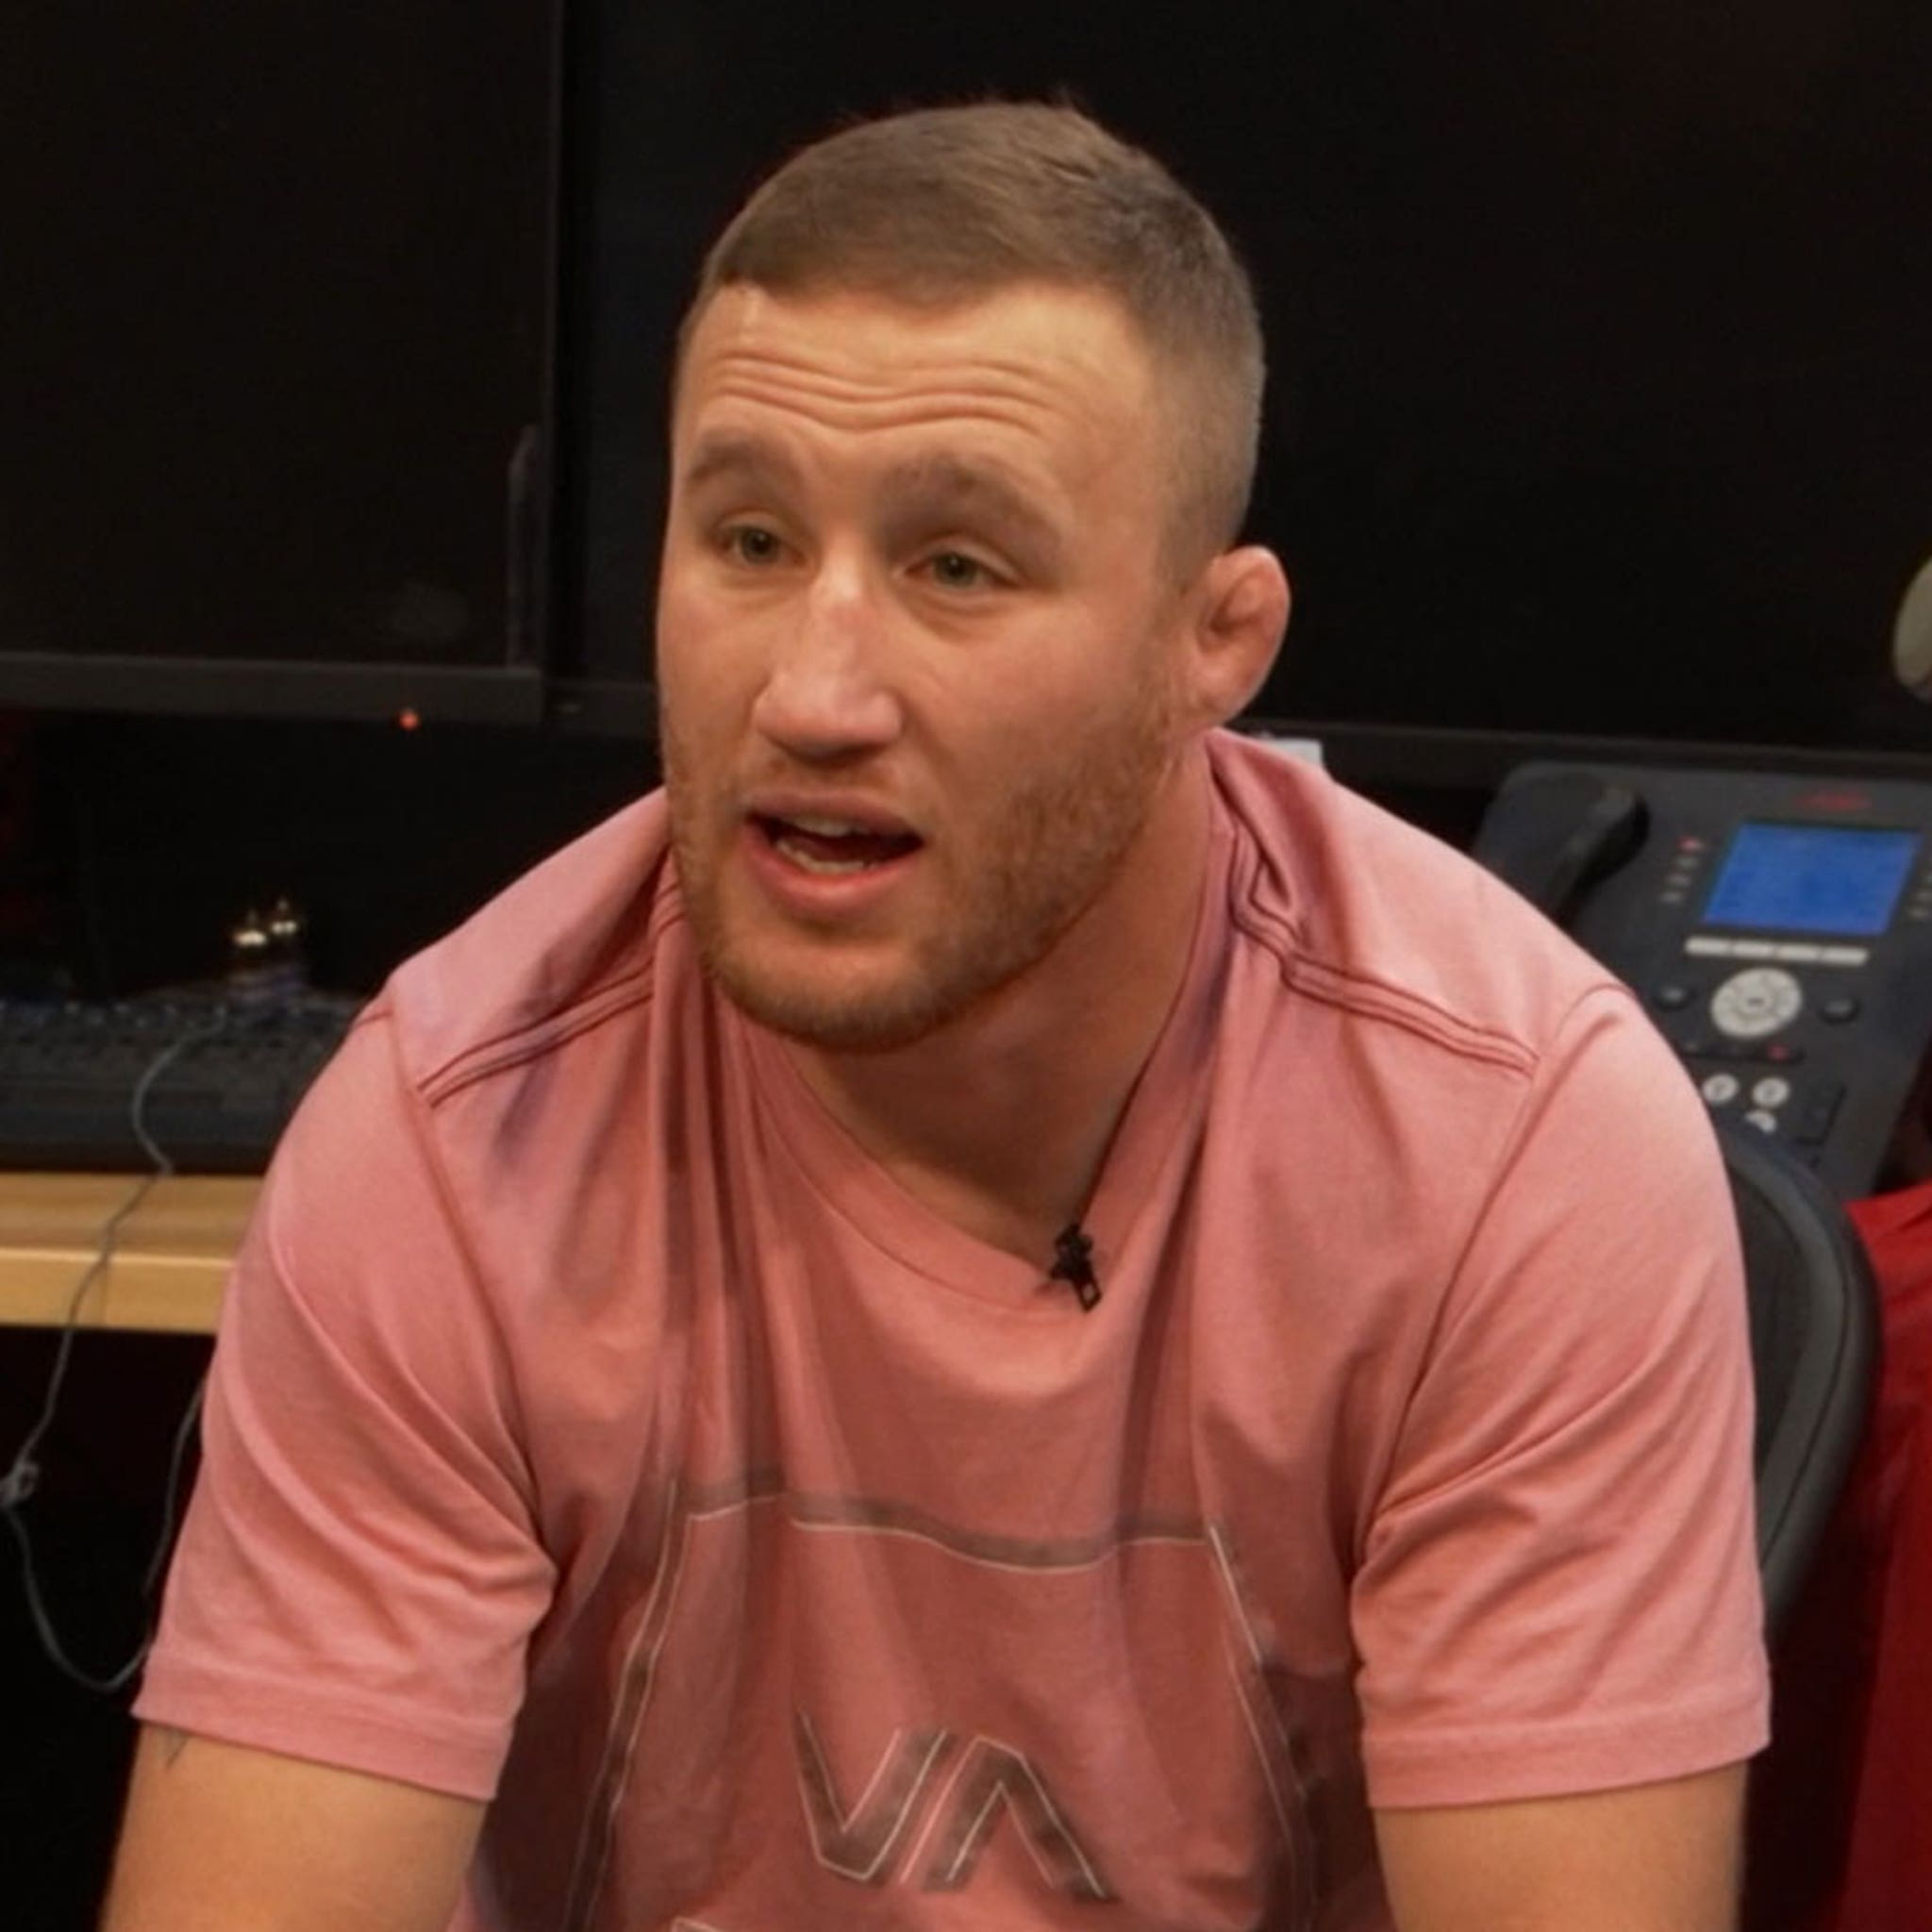 Justin Gaethje Trashes Conor McGregor, 'Fight Me Or Go Away Already!'